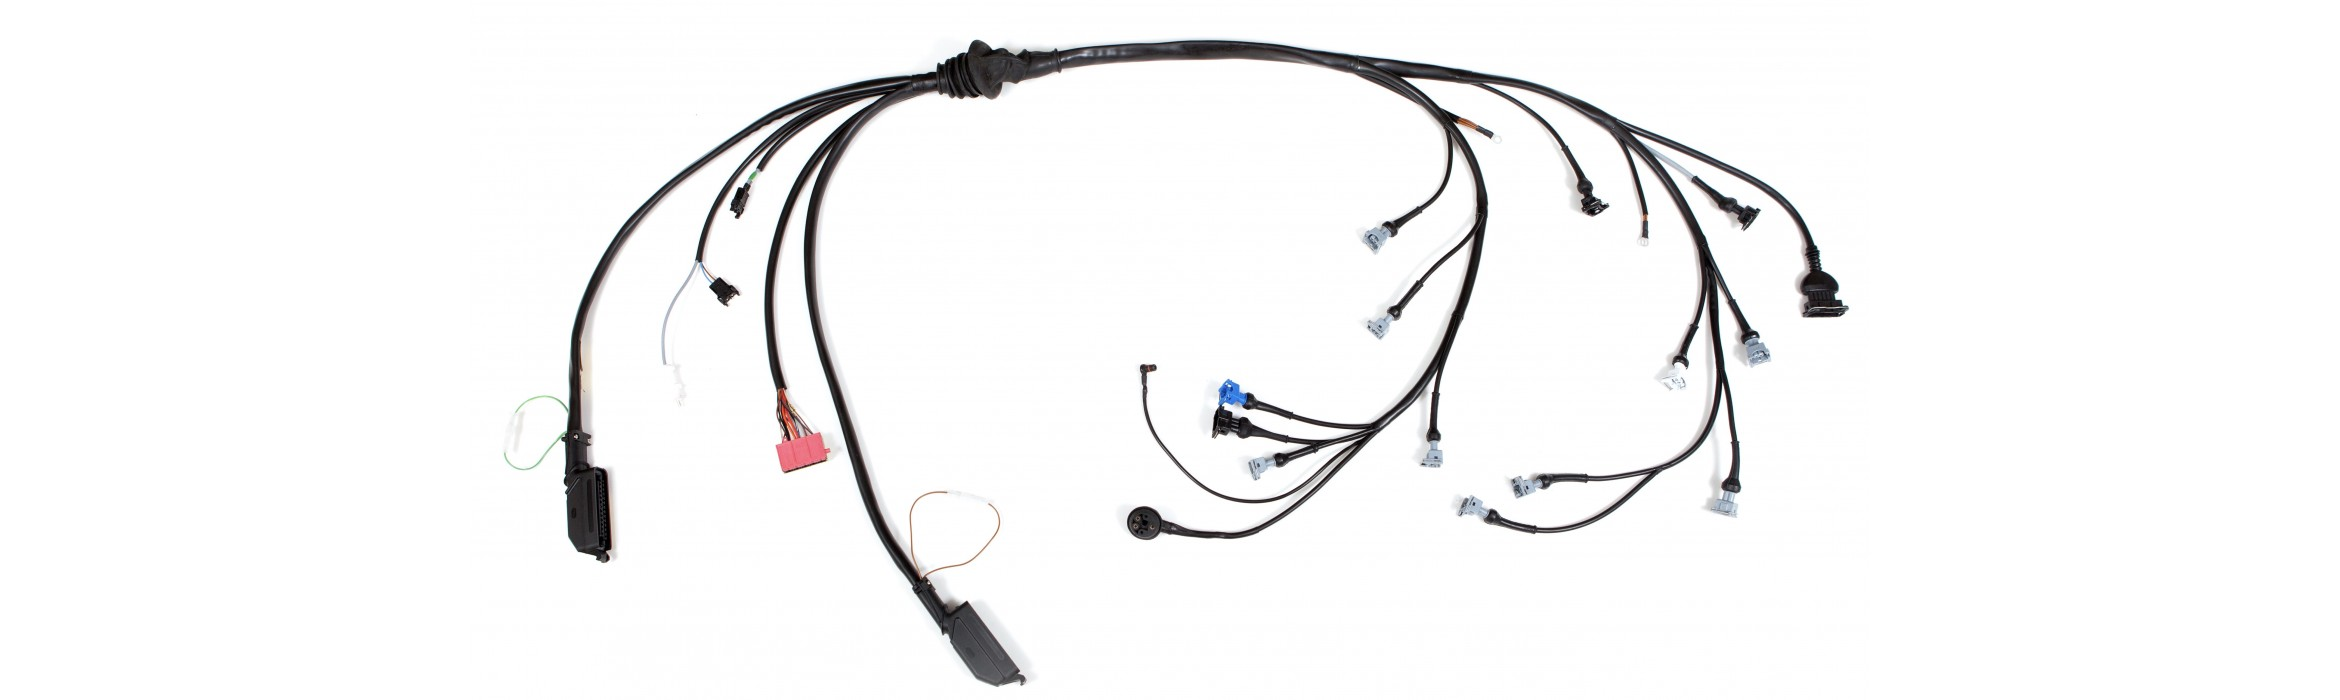 Injector harness 928